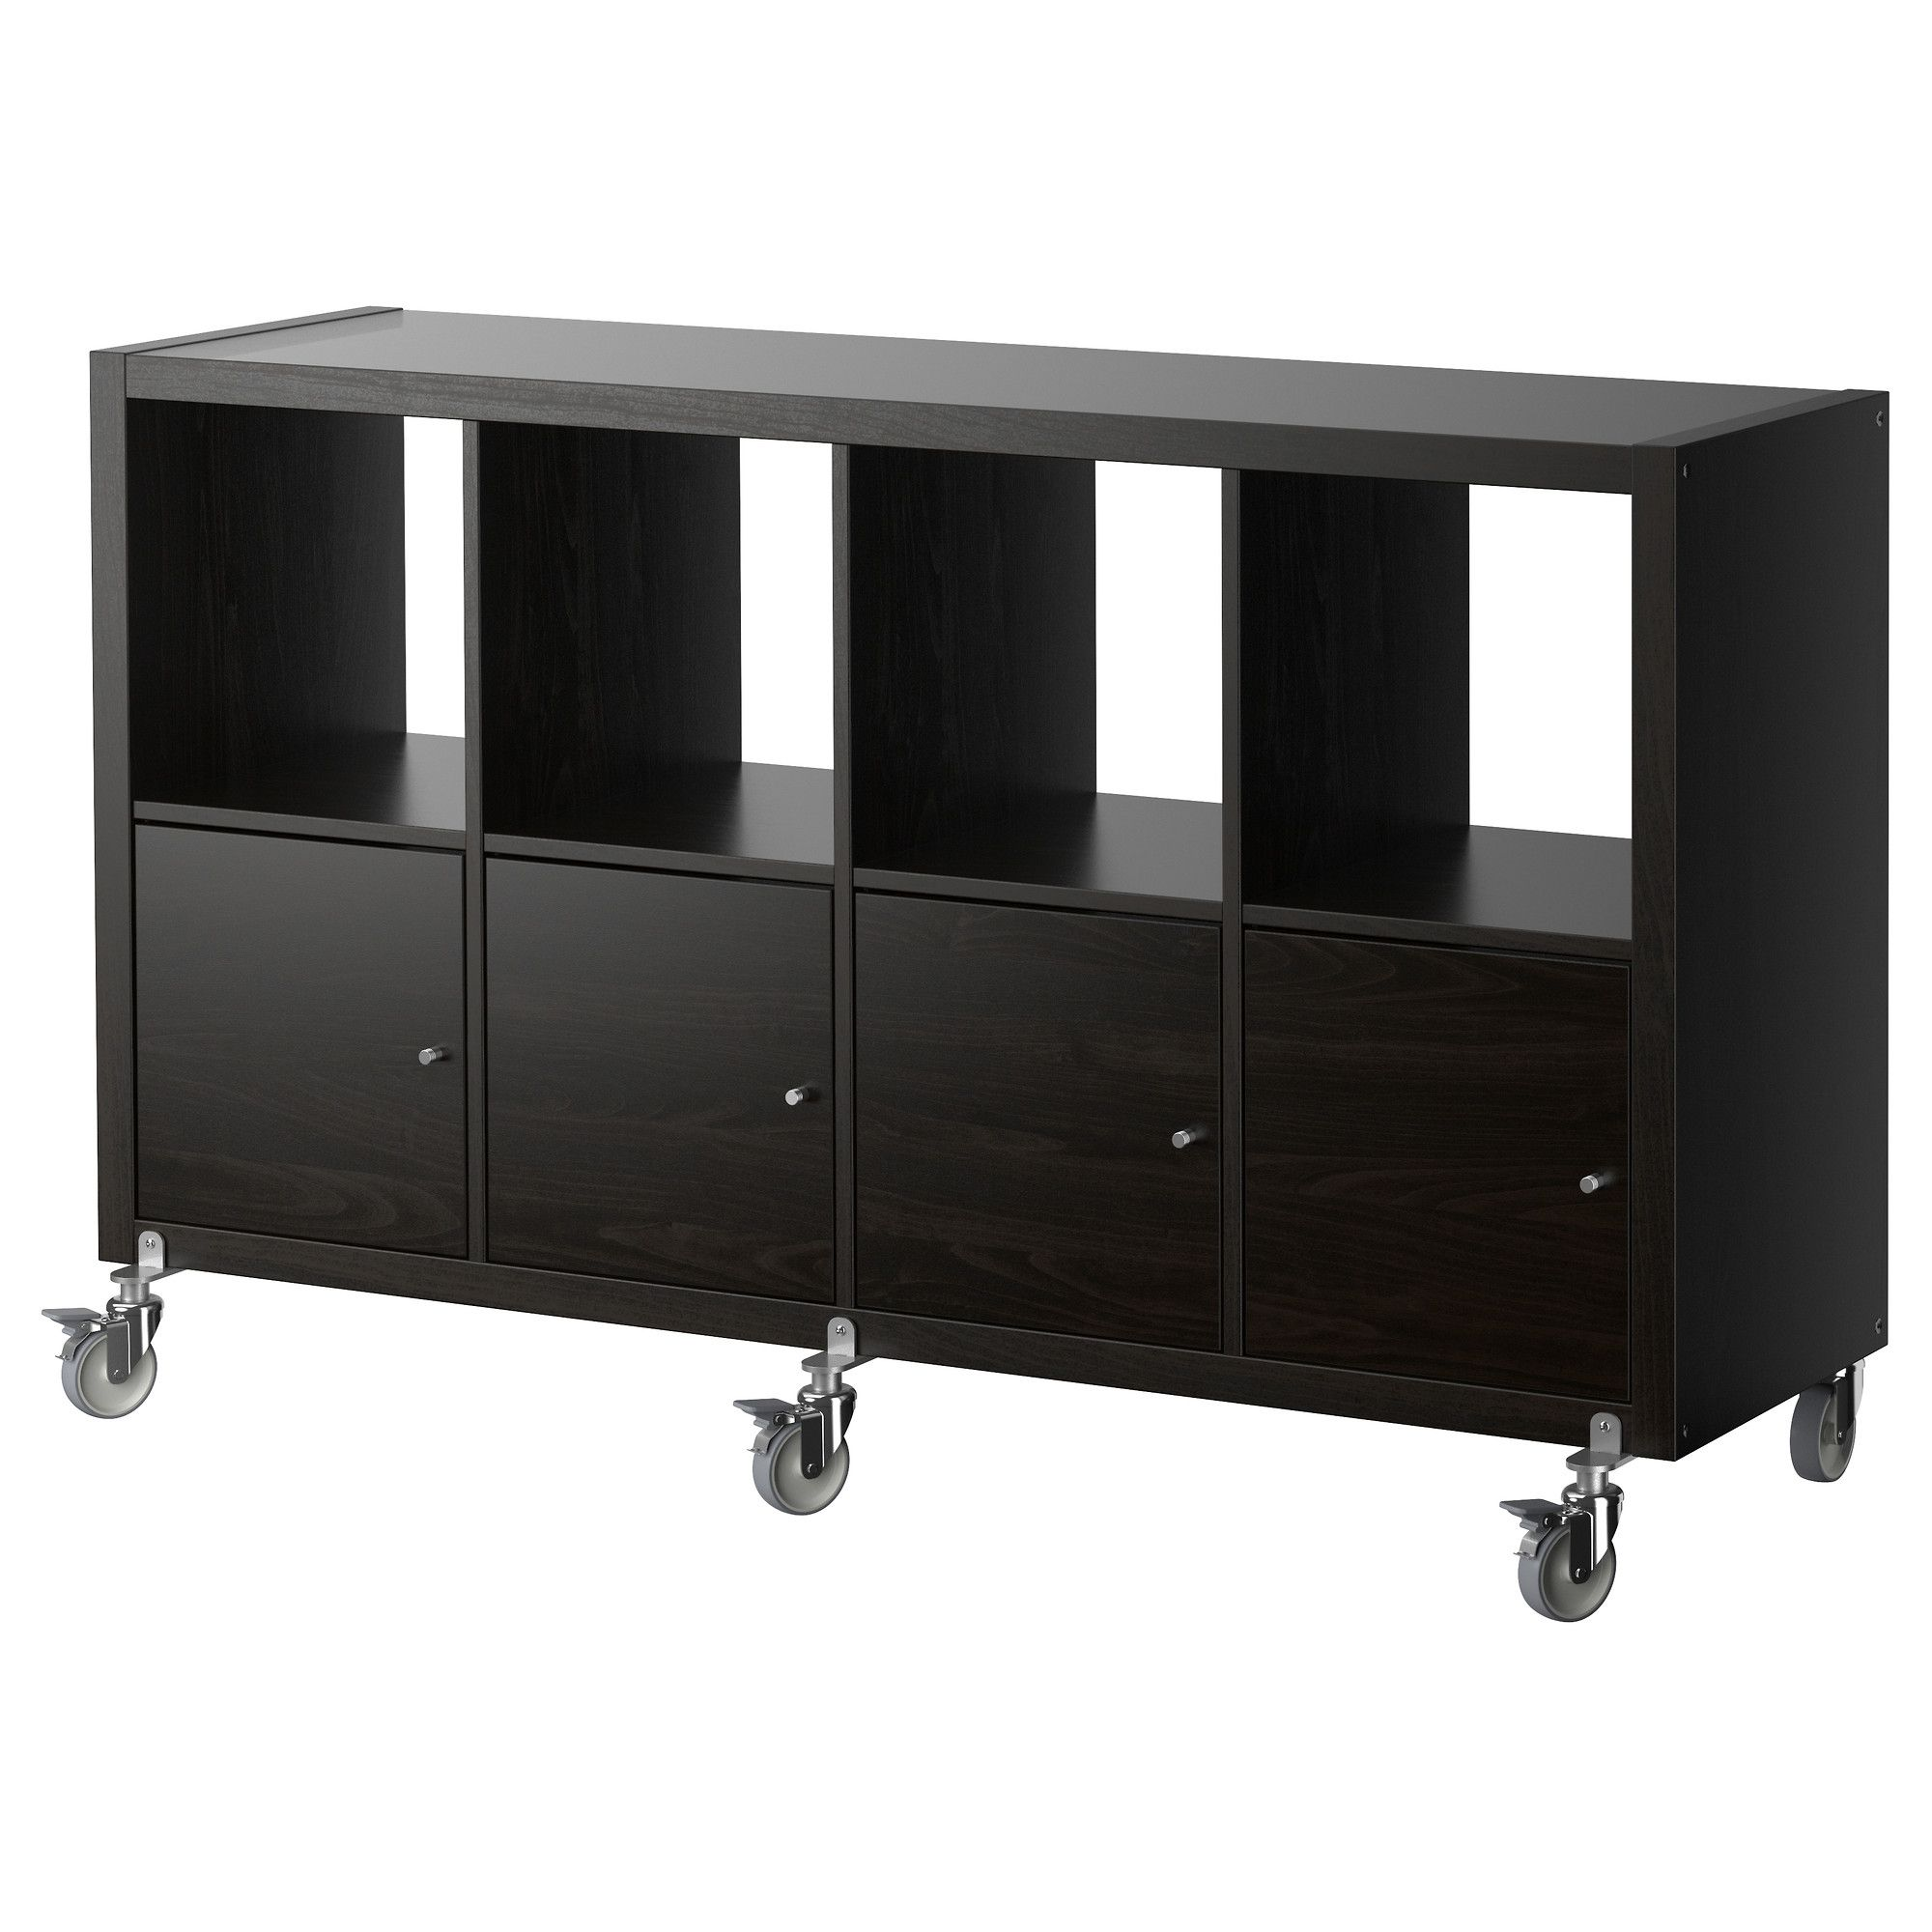 kallax regal mit 4 t ren und rollen schwarzbraun jetzt. Black Bedroom Furniture Sets. Home Design Ideas